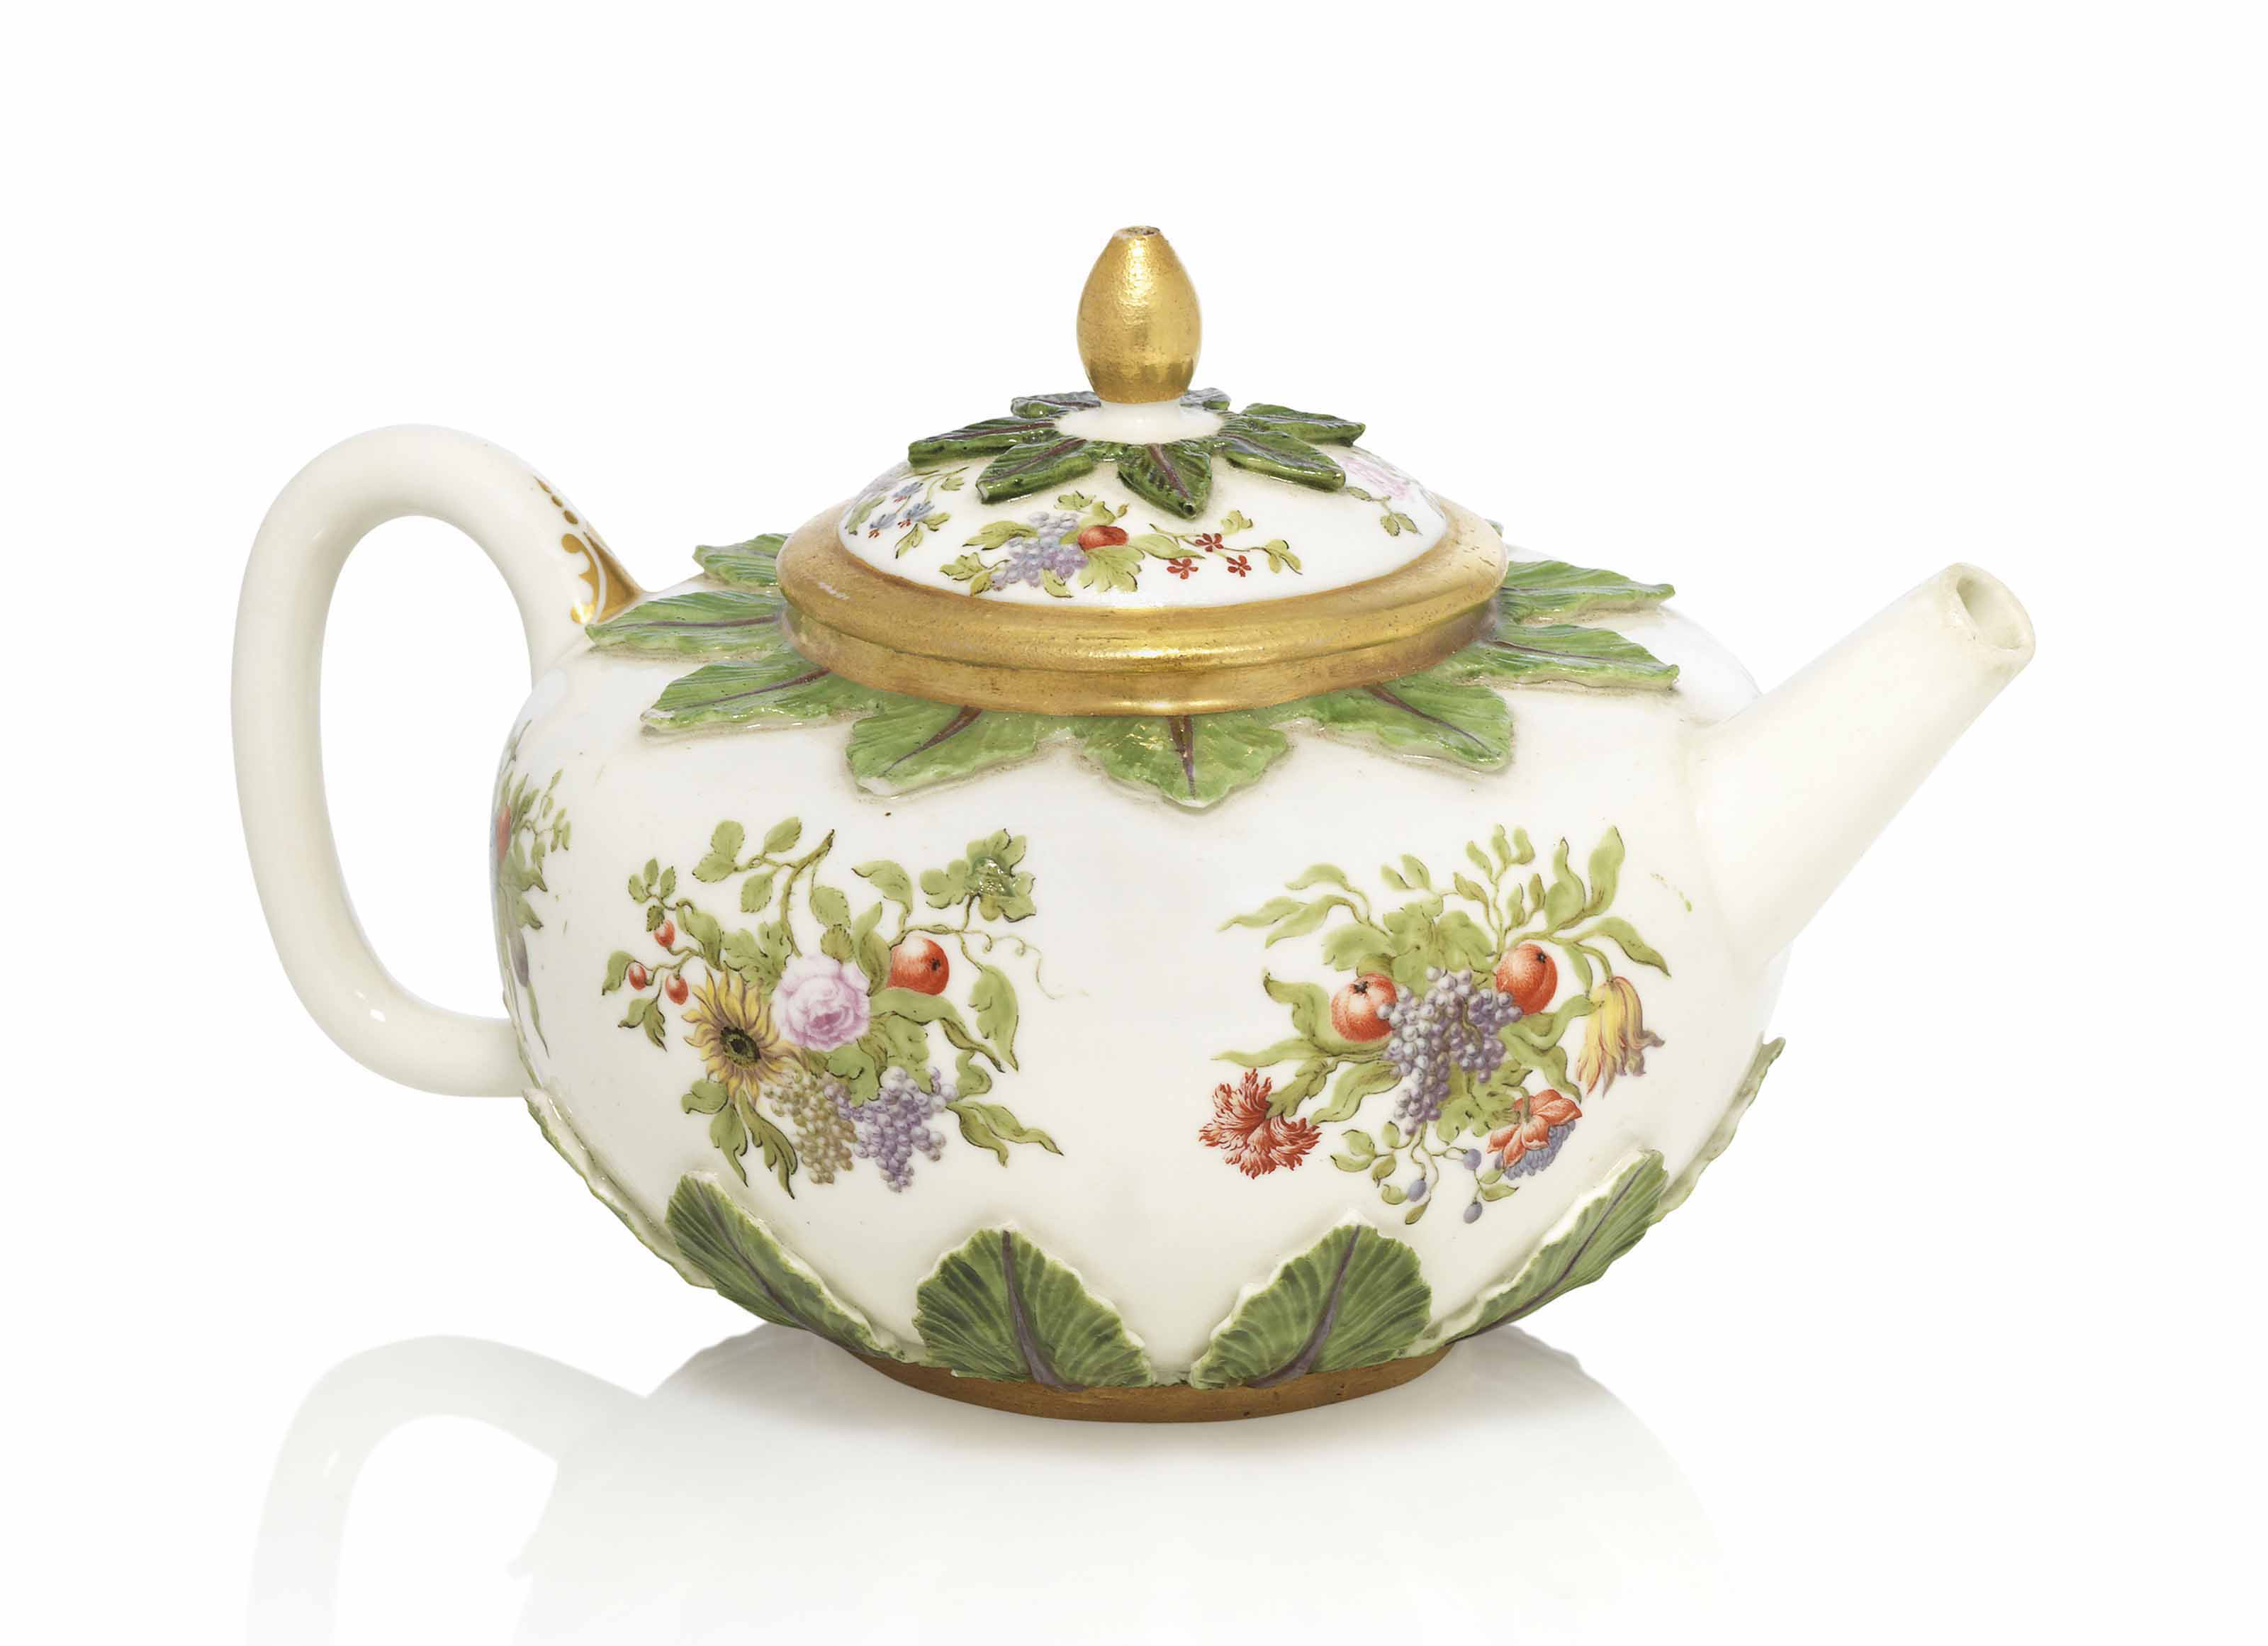 A BÖTTGER PORCELAIN HAUSMALEREI TEAPOT AND COVER